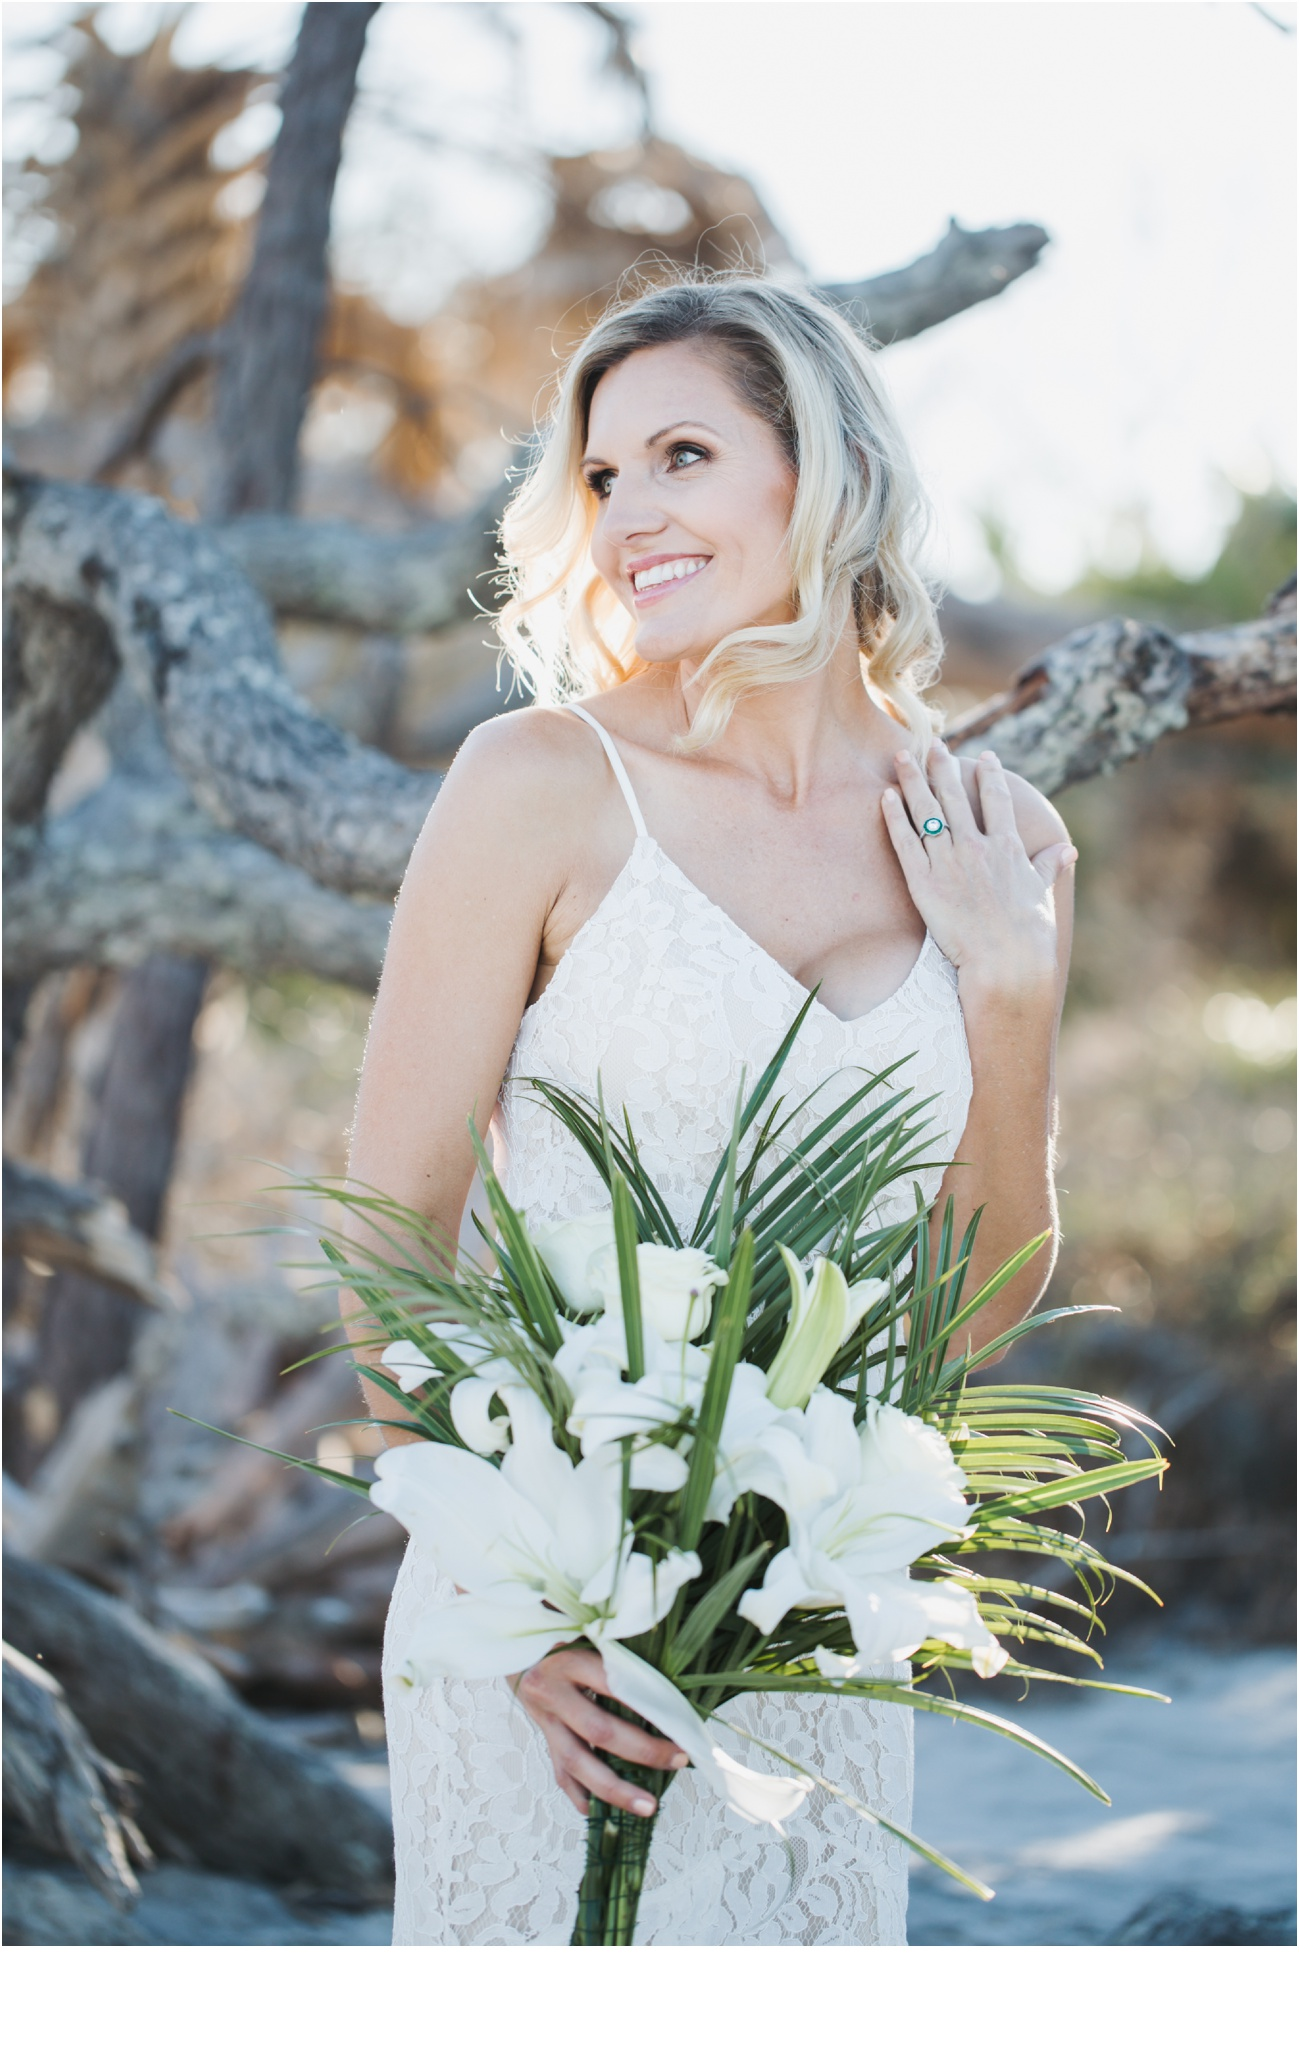 Rainey_Gregg_Photography_St._Simons_Island_Georgia_California_Wedding_Portrait_Photography_1567.jpg